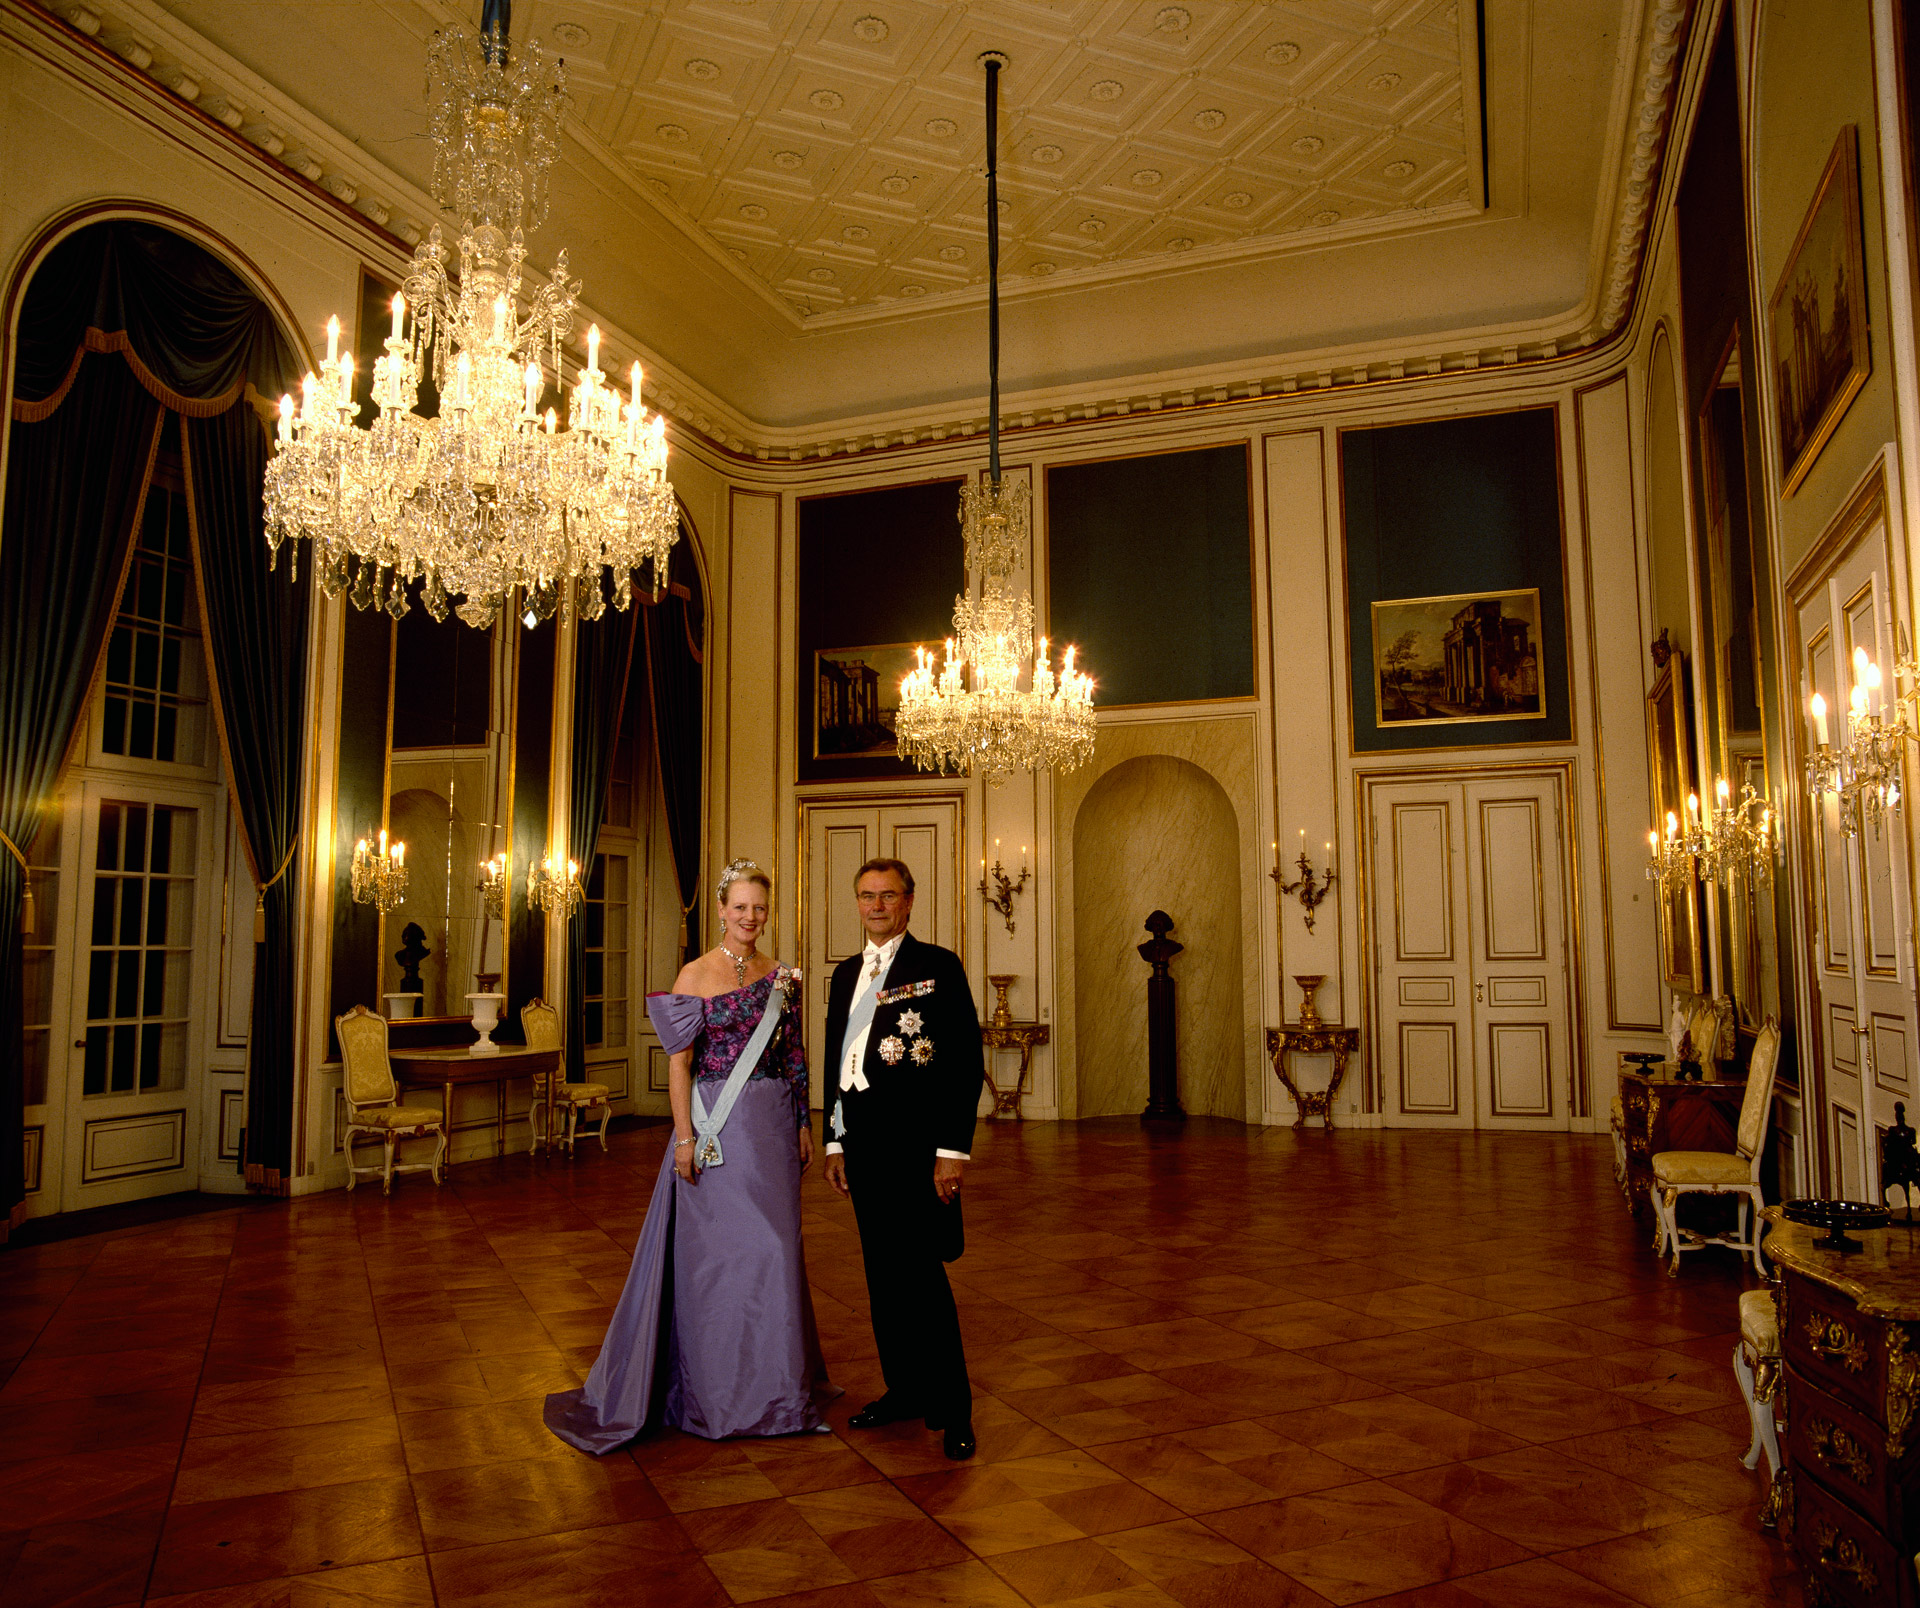 Queen Margrethe ll of Denmark and Prince Henrik